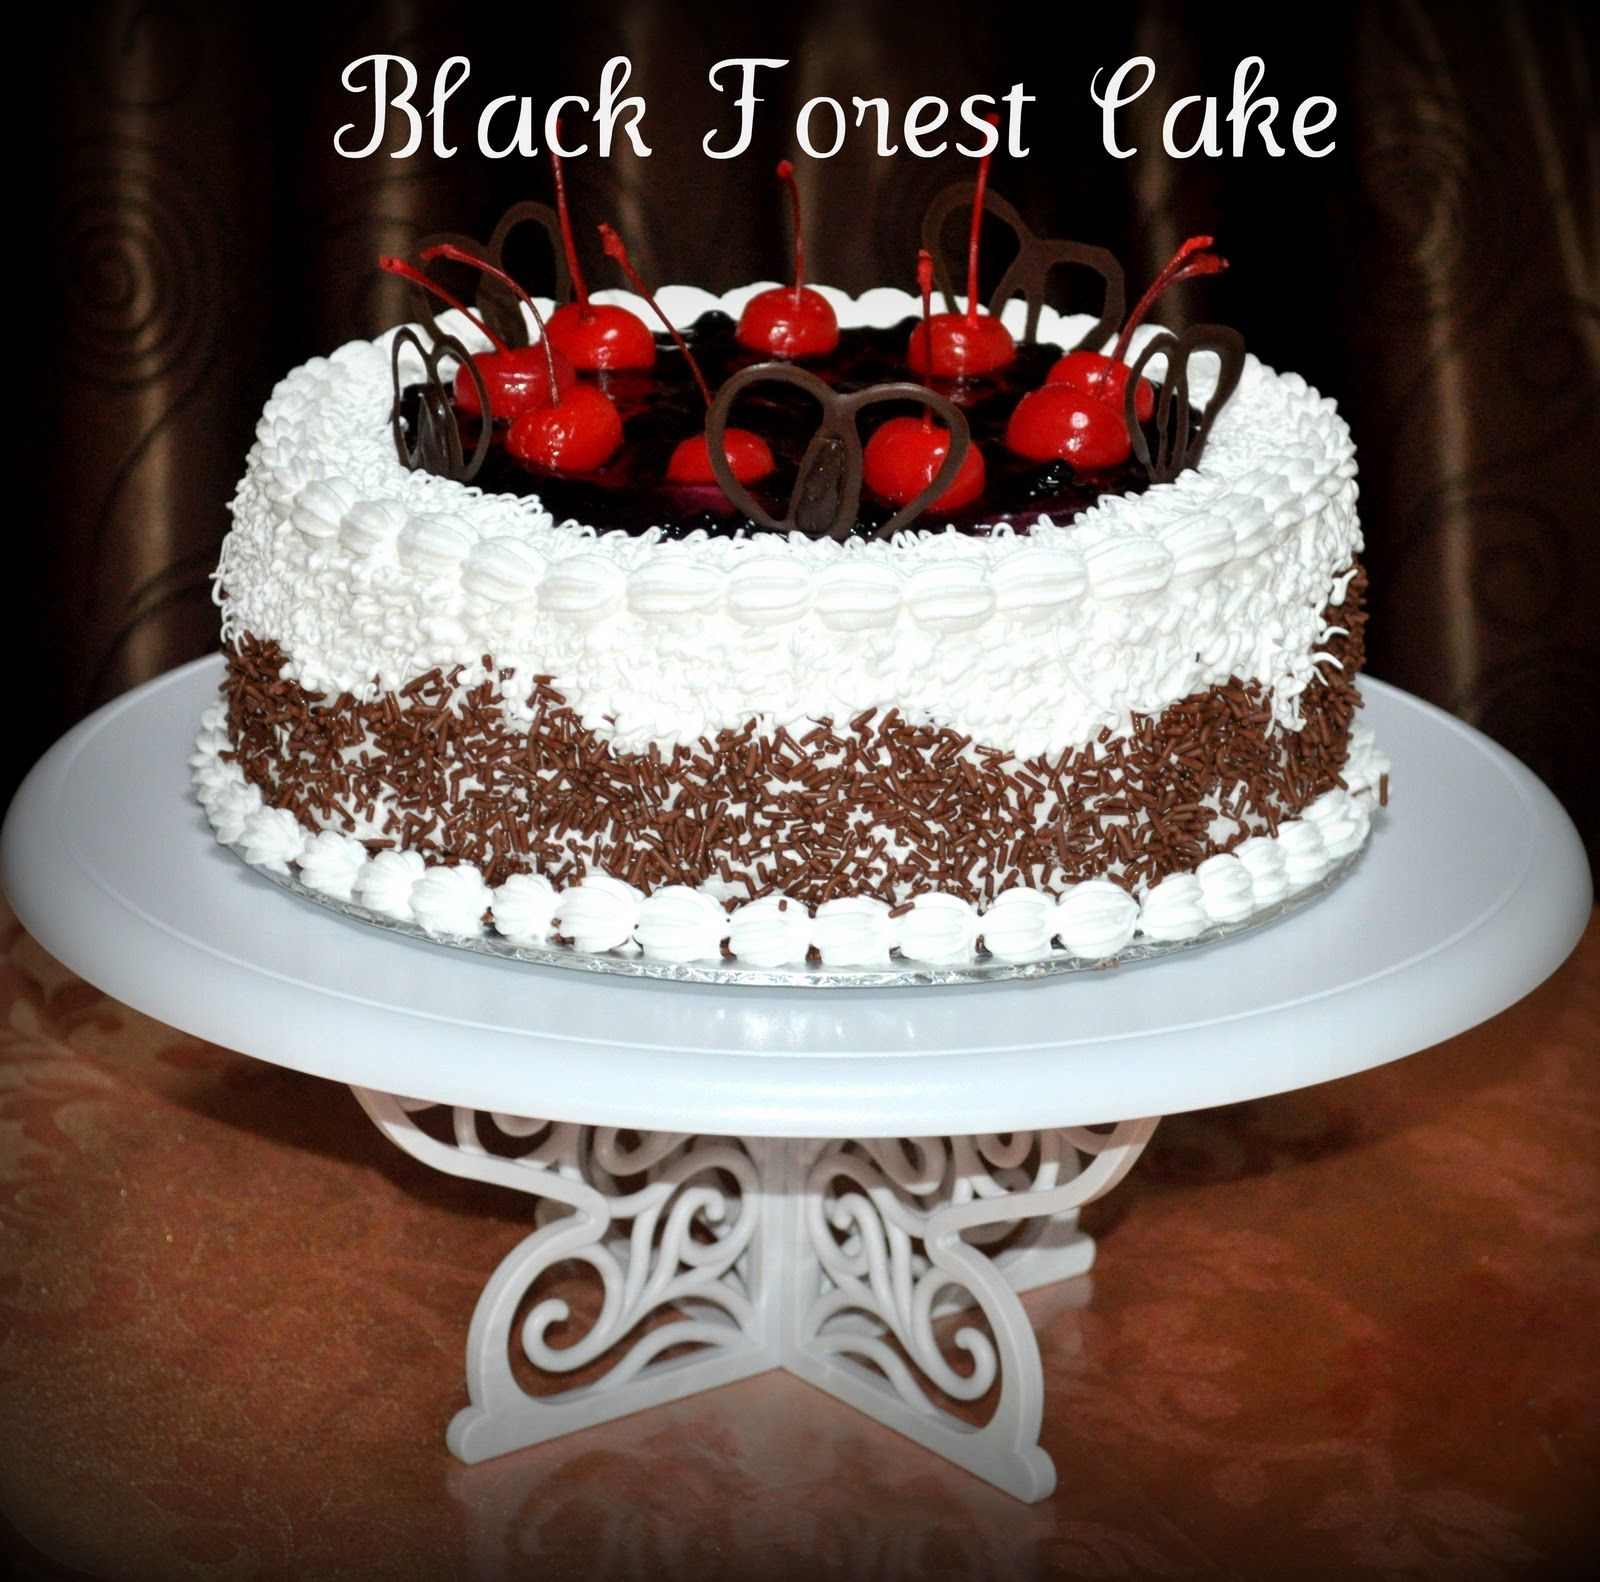 German Black Forrest Cake This Is What I Want For My Birthday This